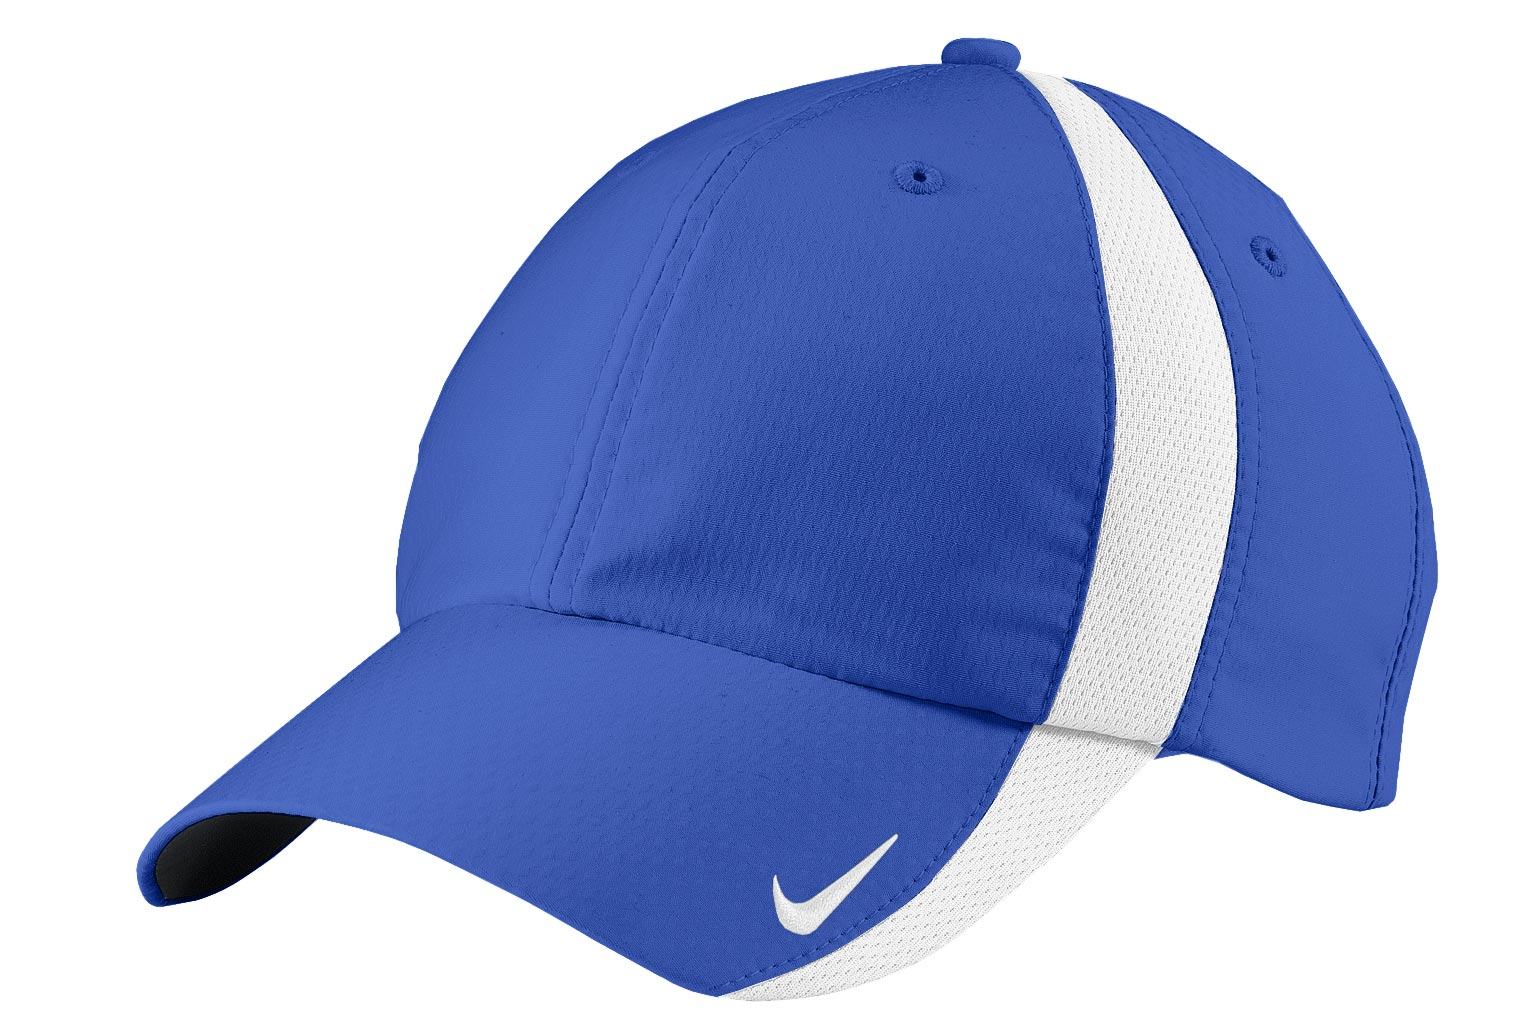 941b3b8ec01 Custom NIKE GOLF - Sphere Dry Cap